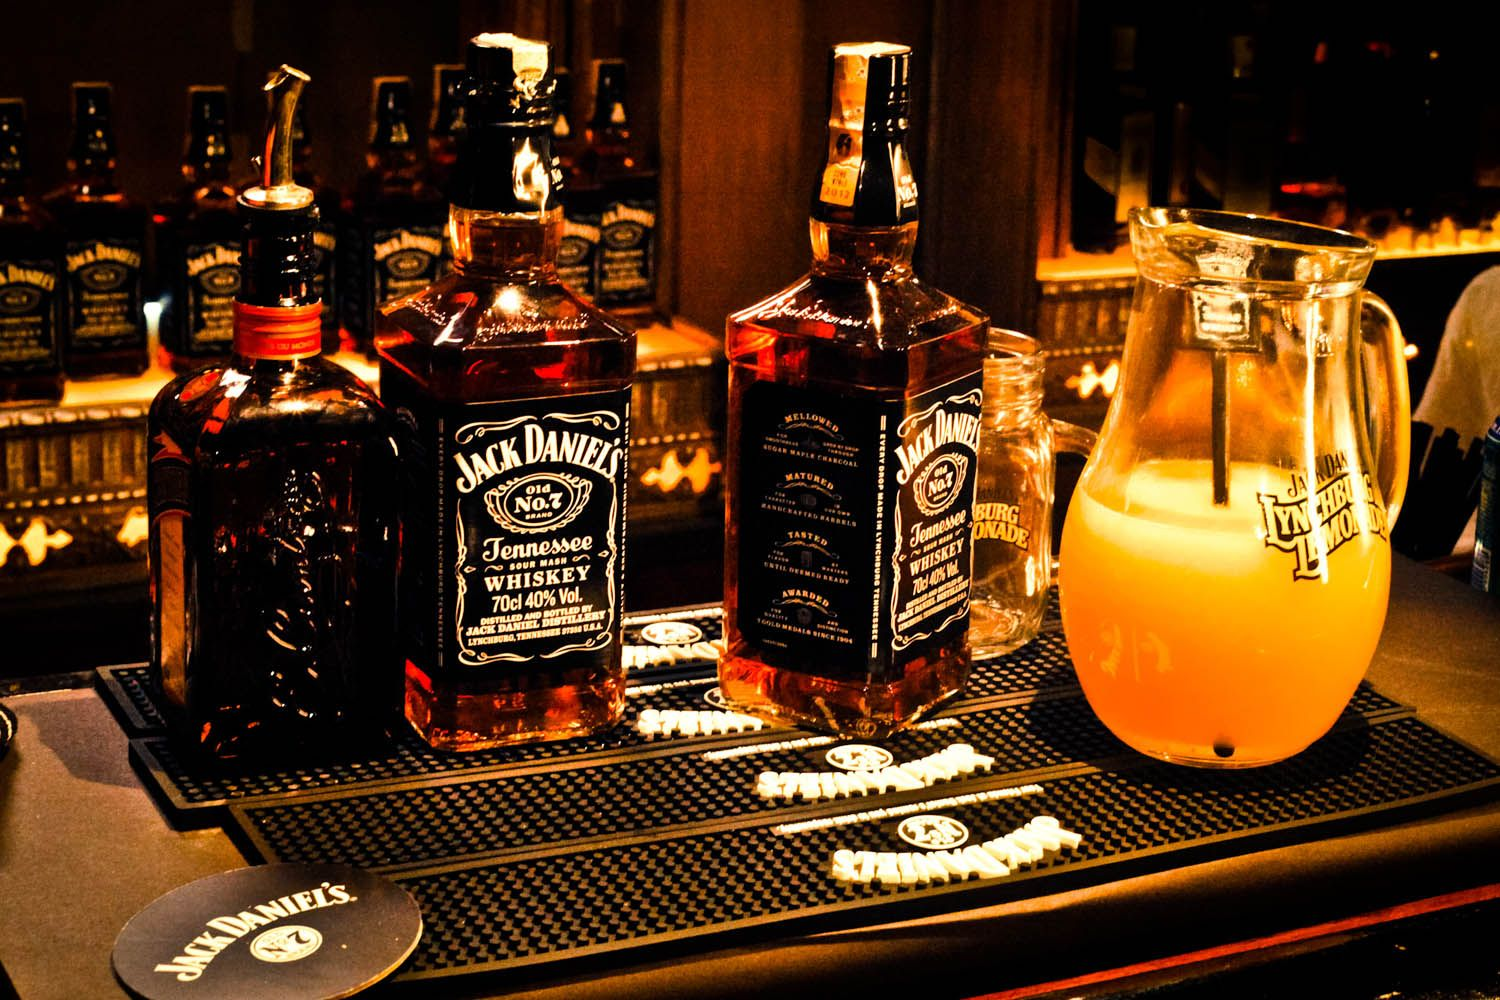 Gentleman Jack Wallpaper Jack Daniels an...